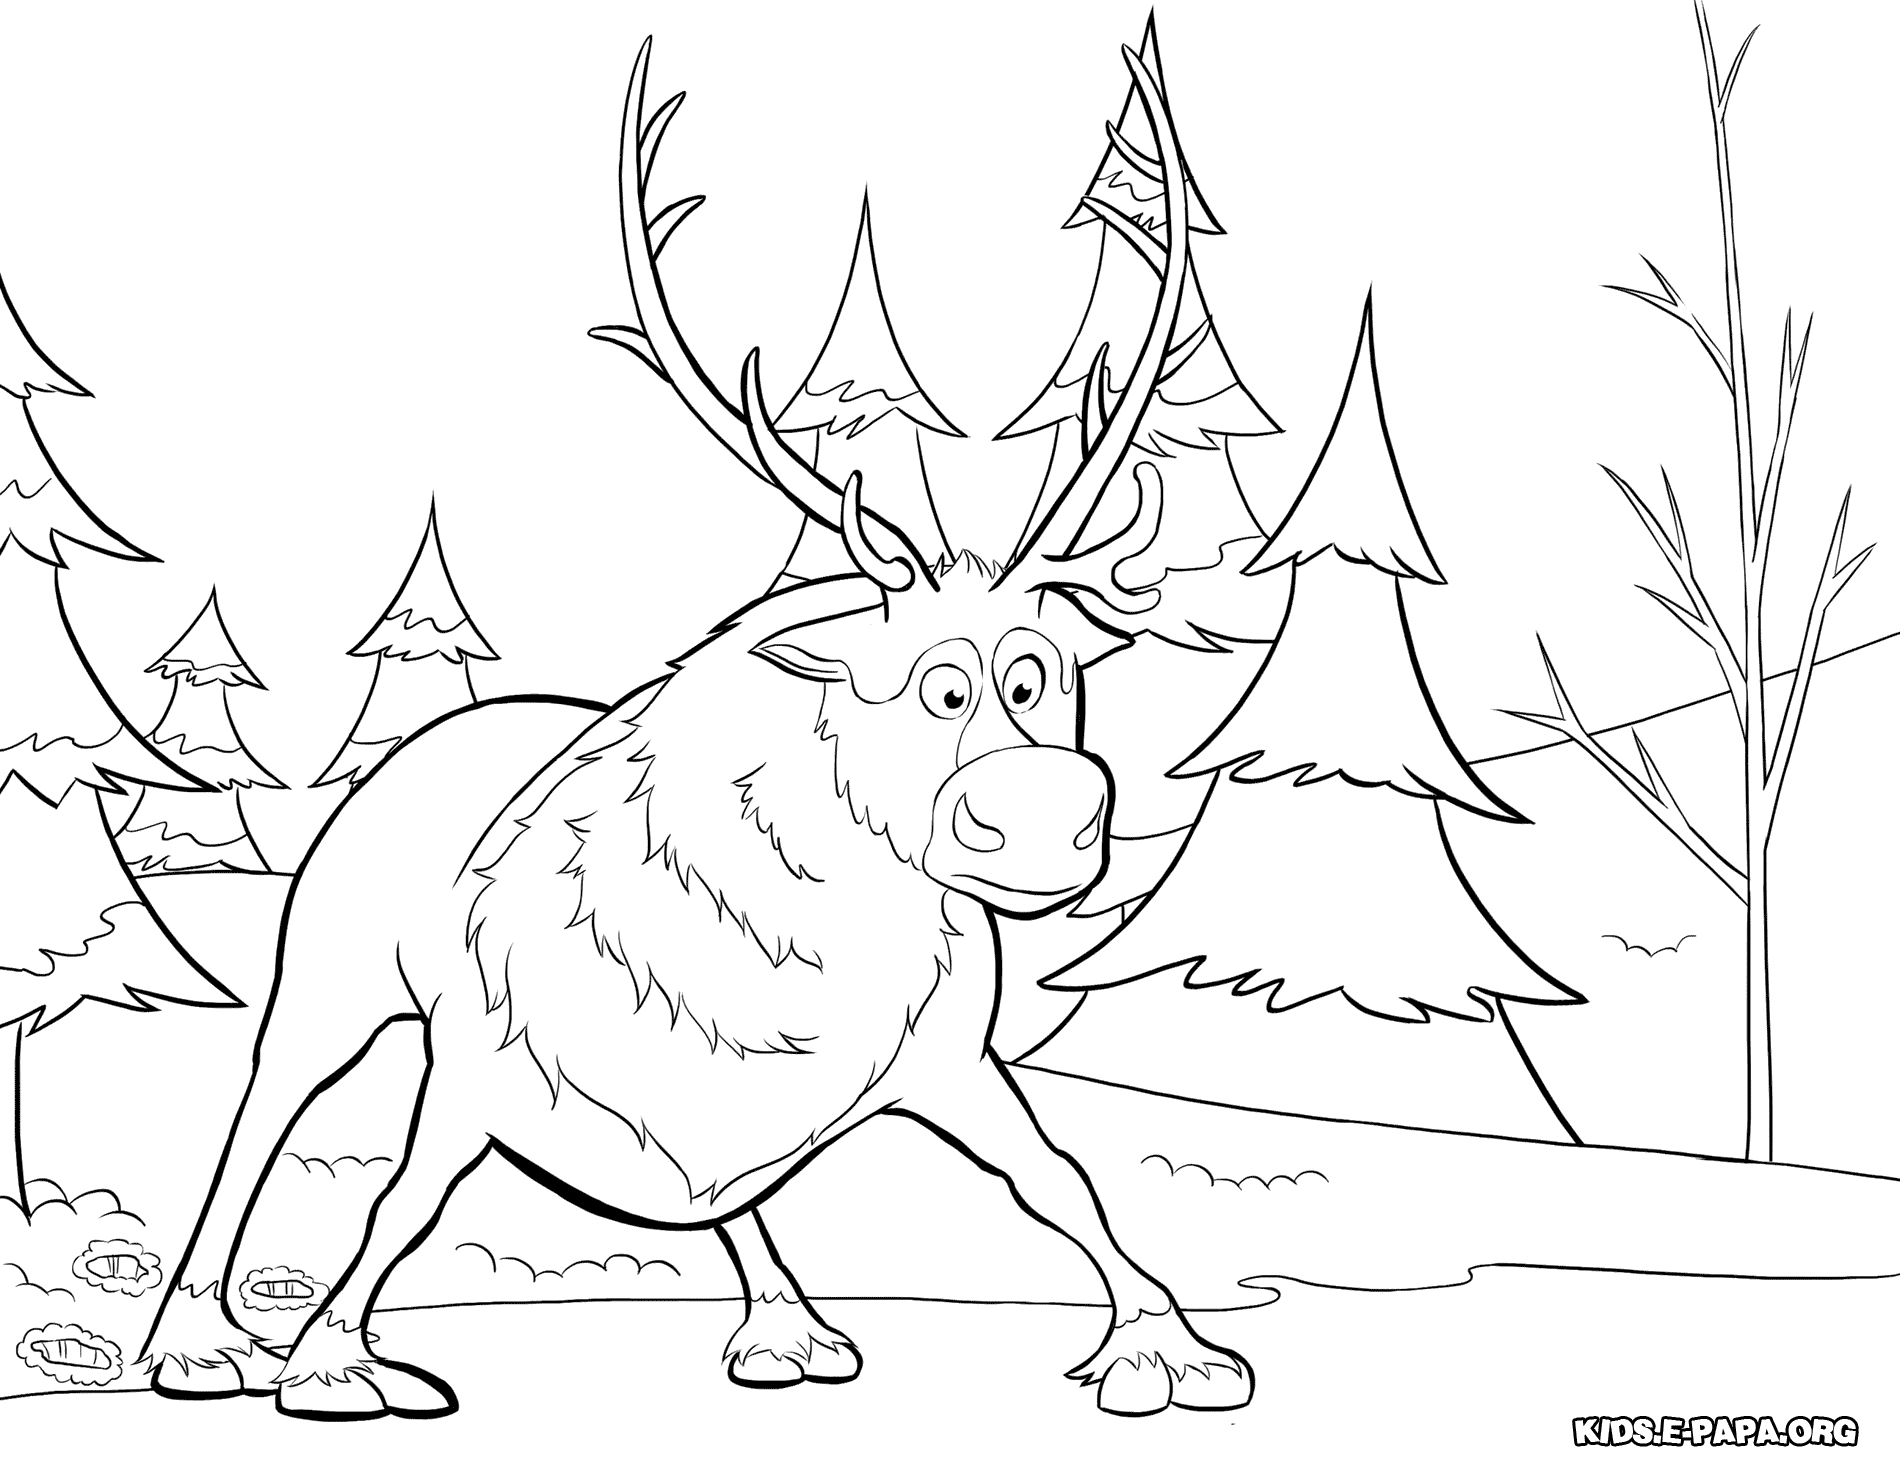 ficial Frozen Illustrations Coloring Pages